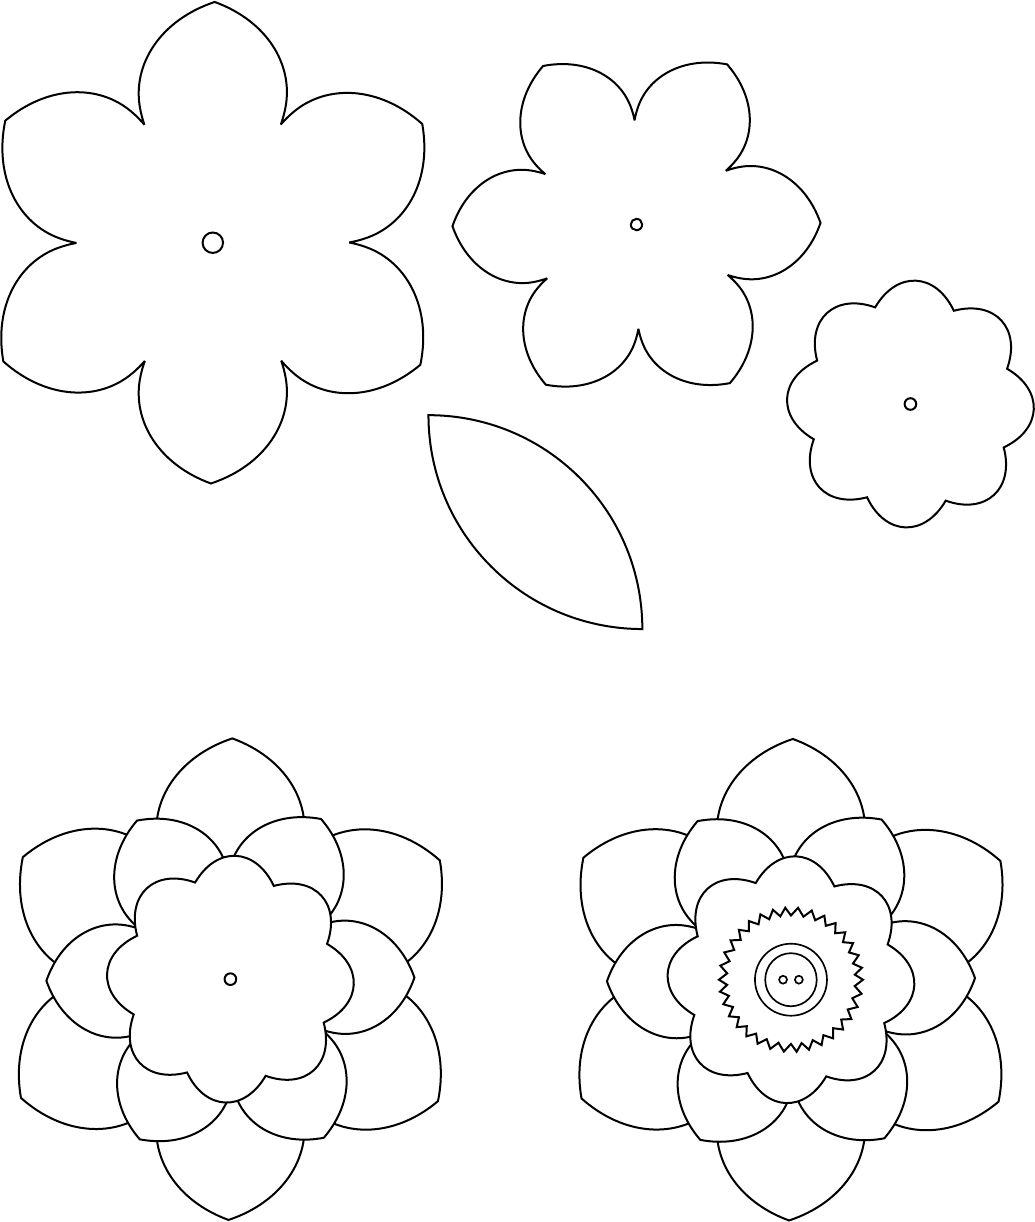 picture relating to Felt Flower Template Printable titled Flower Template 1 Crafts Flower template, Felt flower